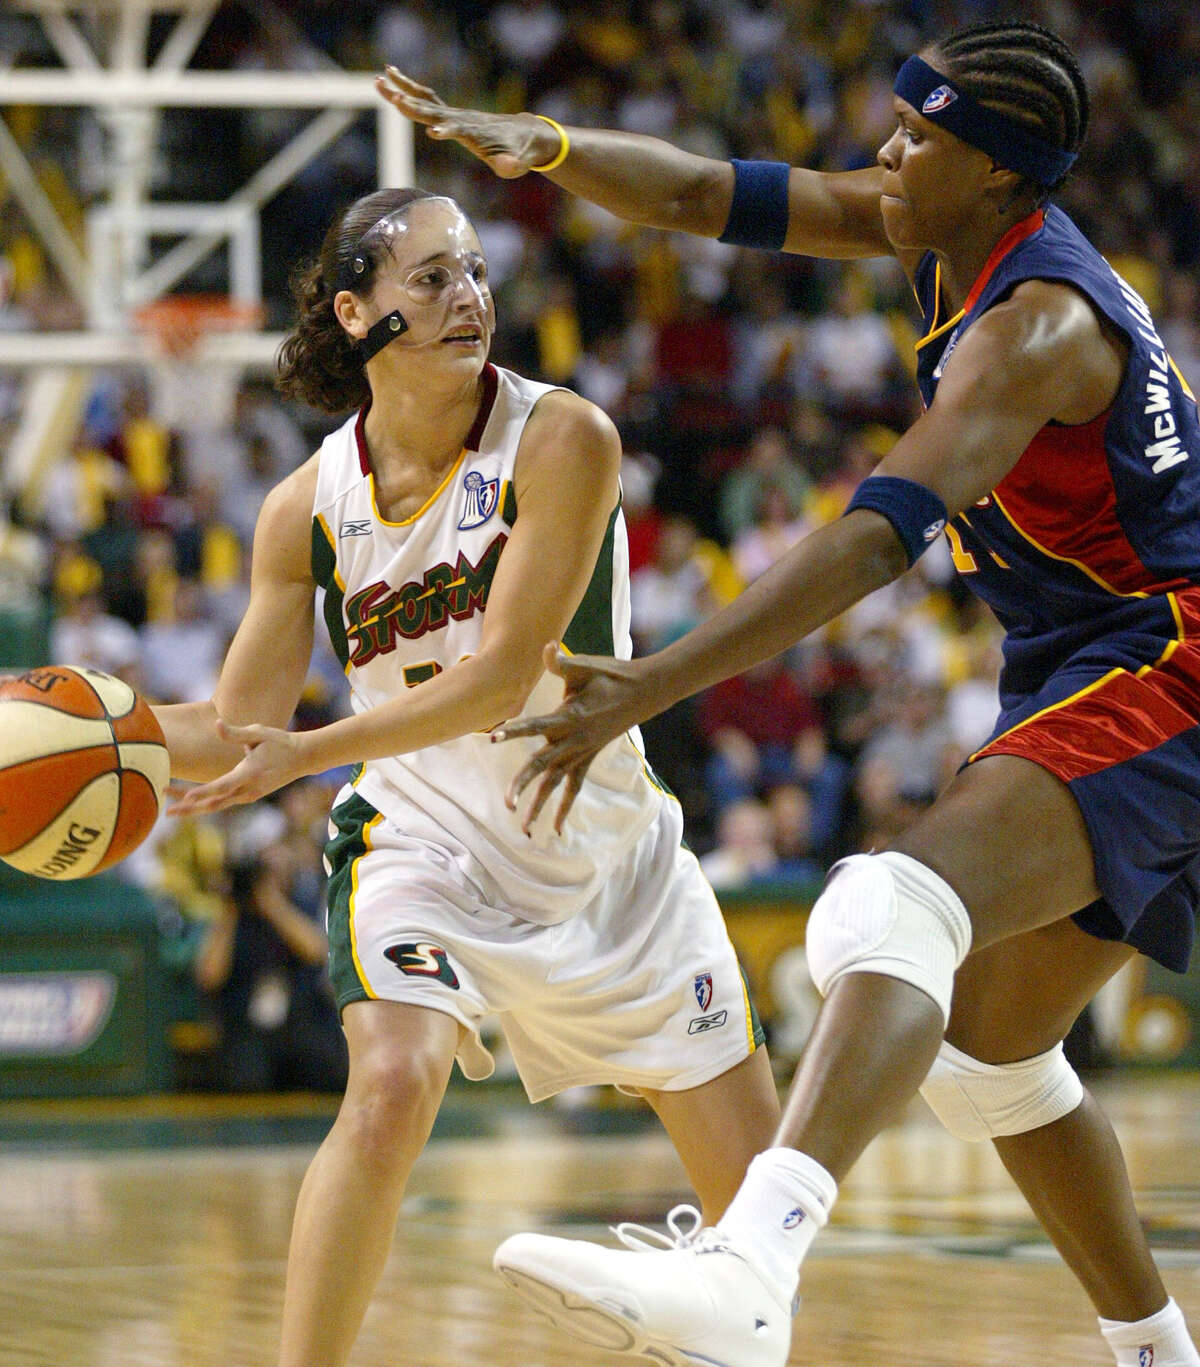 Seattle Storm guard Sue Bird, left, passes around Connecticut Sun center Taj McWilliams-Franklin in the 1st half Tuesday, Oct. 12, 2004 in Game 3 of the WNBA Finals at Key Arena in Seattle.